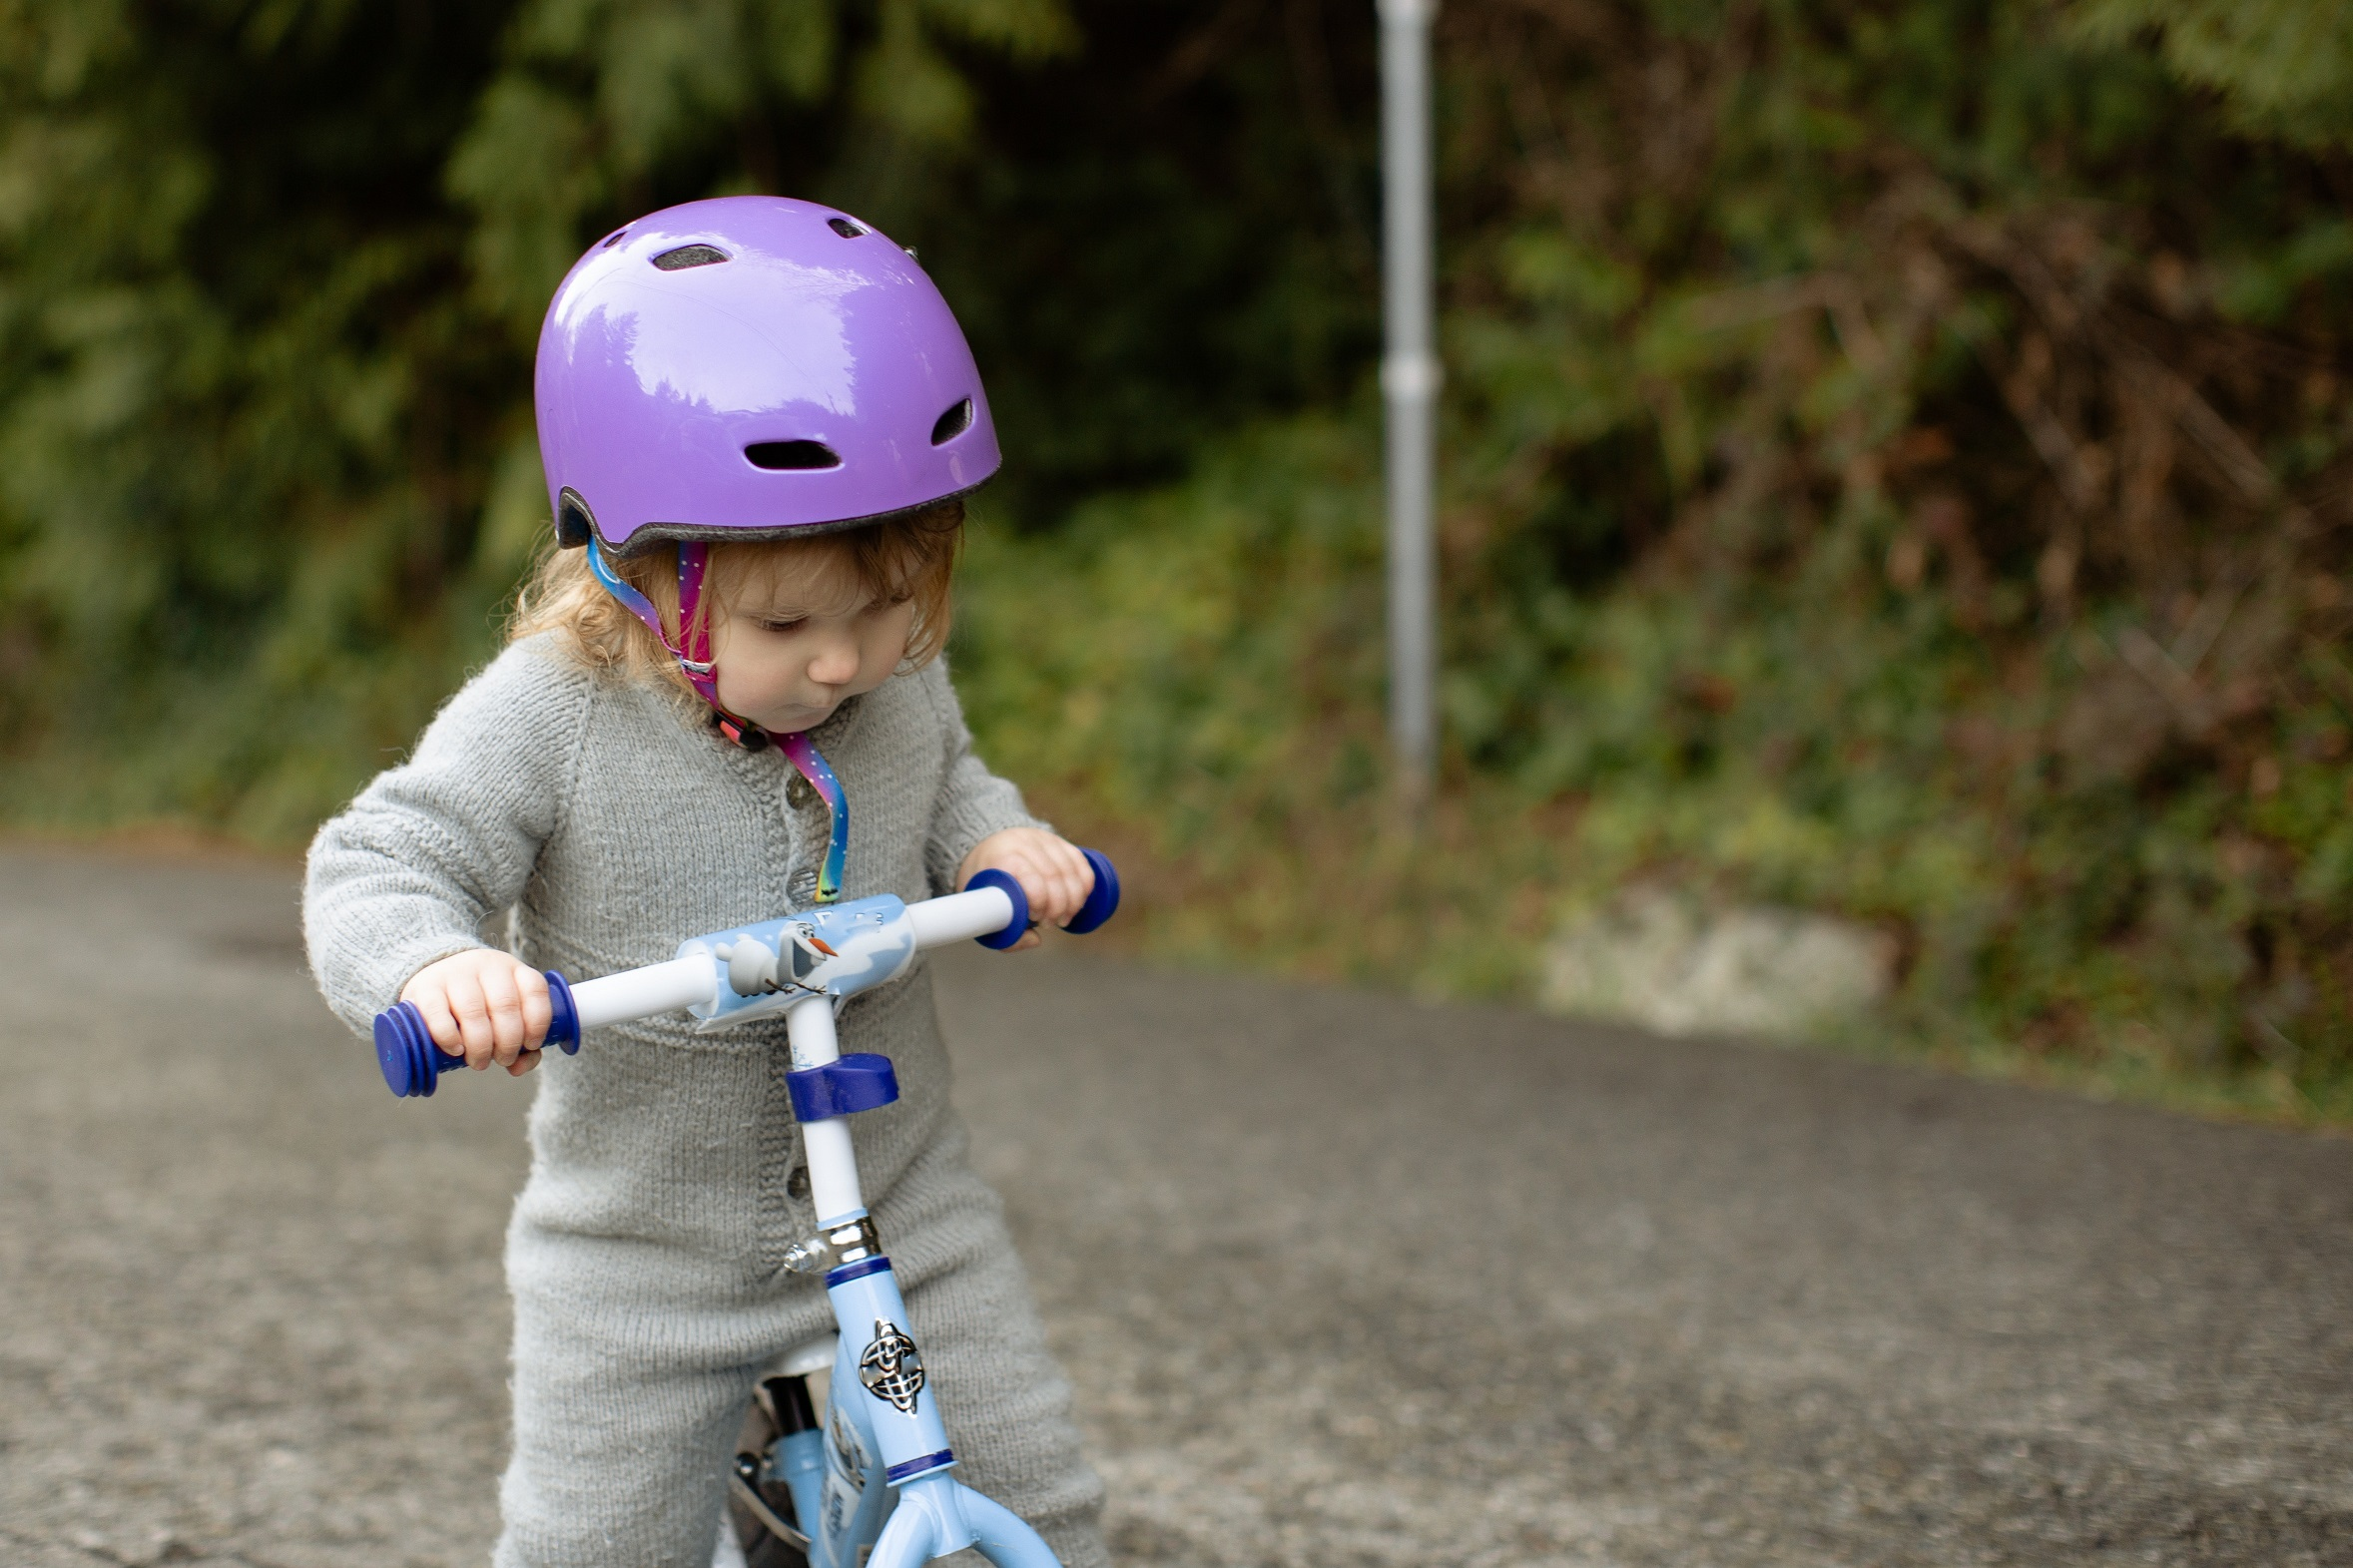 Child being active in early years